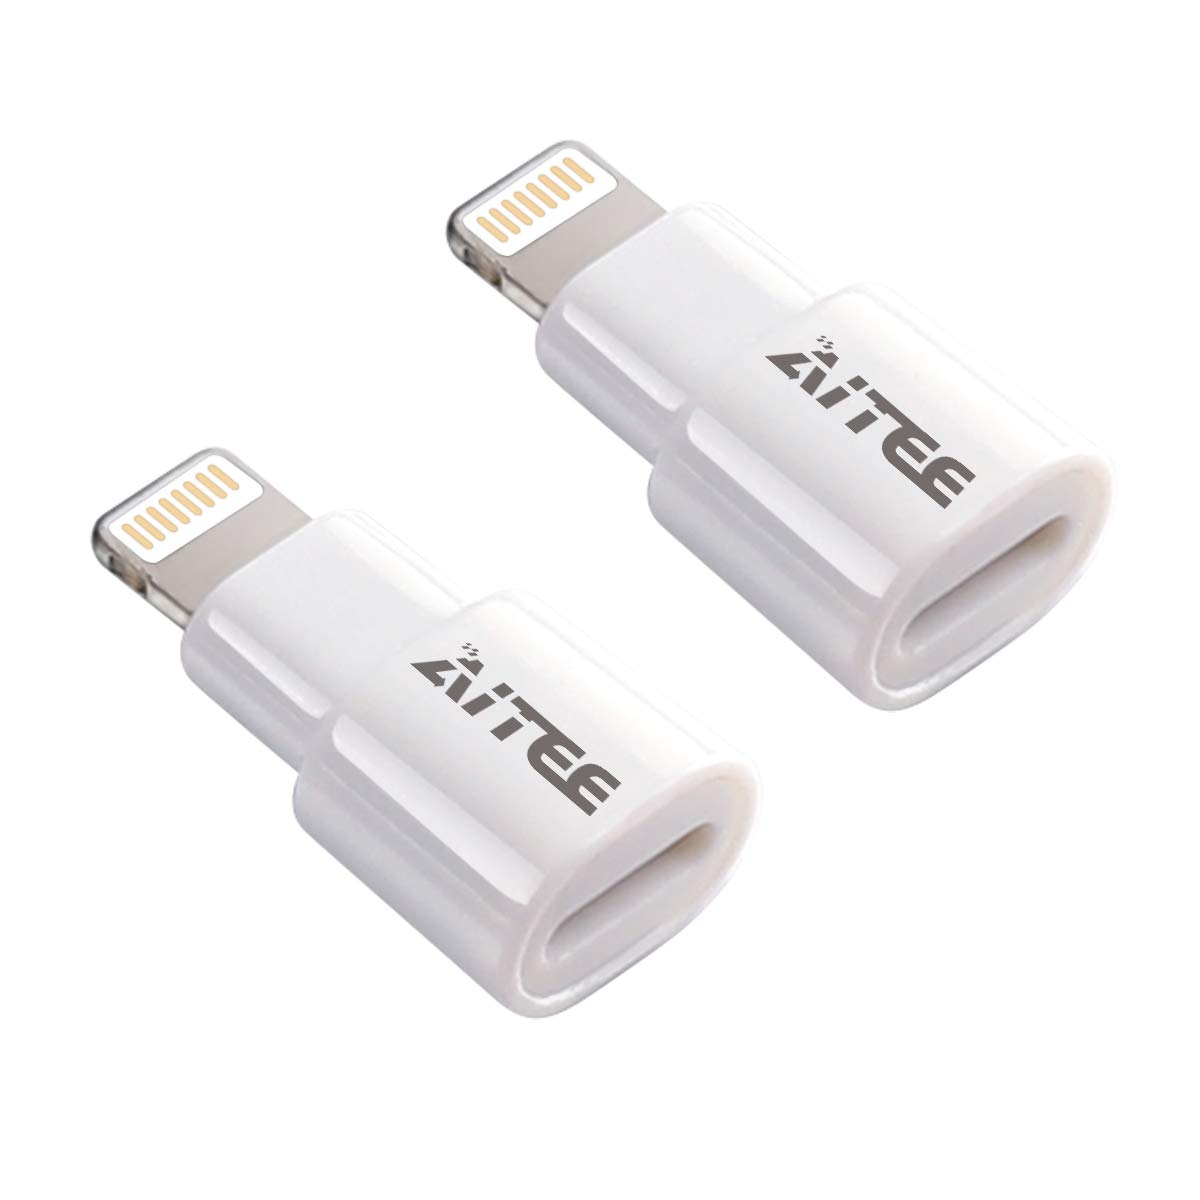 8 Pin Extender Adapter, AITEE Dock Extension Connector for Lifeproof Otterbox Case Compatible with iPhone 5/5s/5c/SE/6/6S/7/8 Plus/X and iPad (White 2Pack)